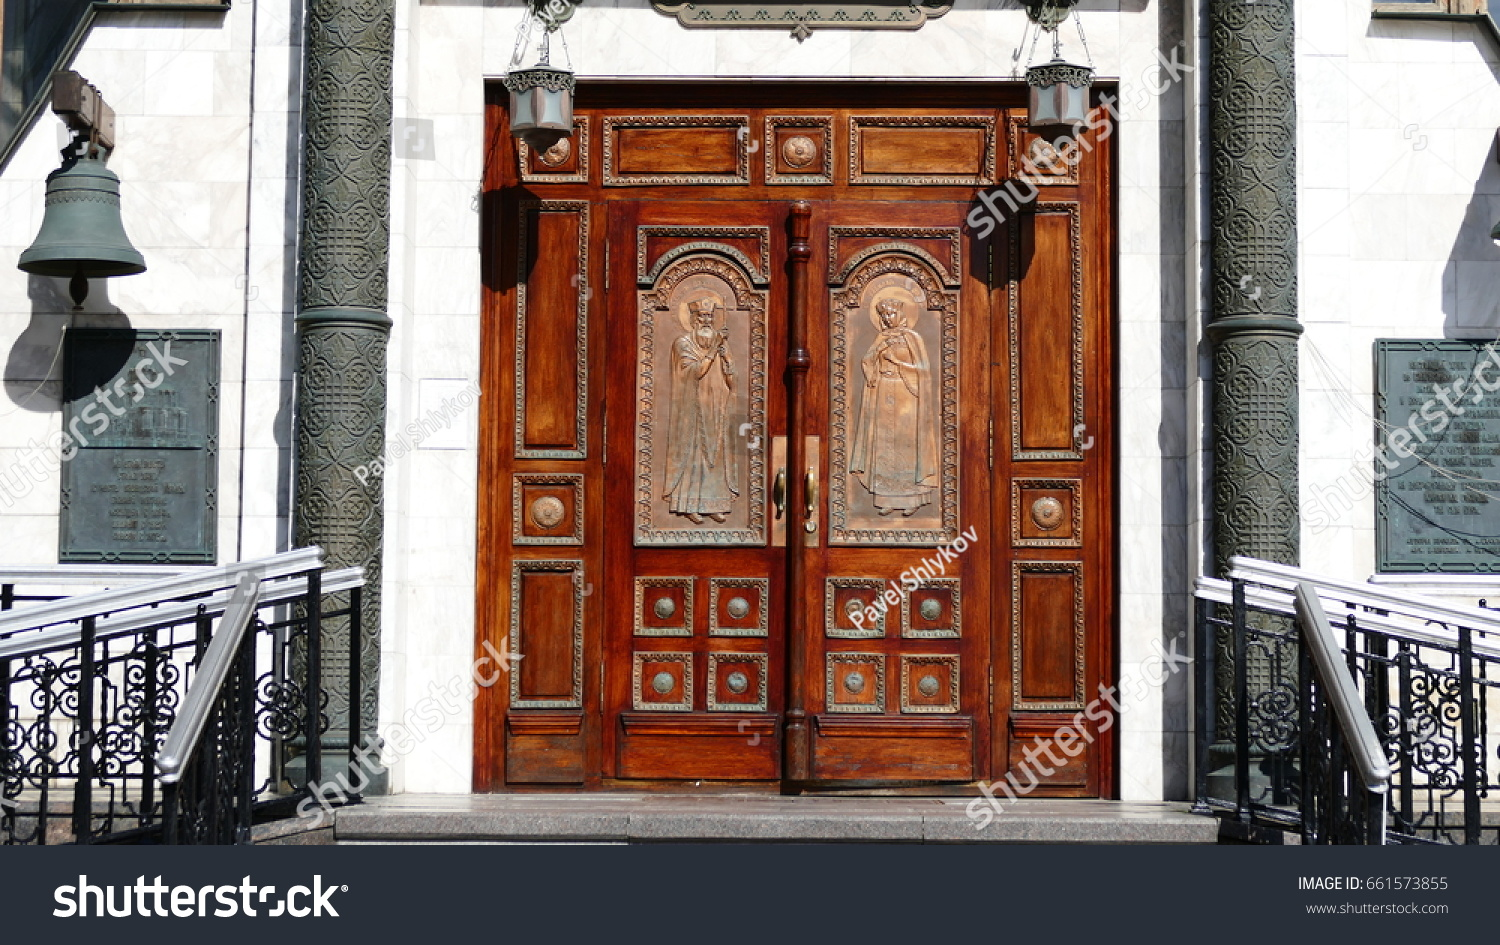 JUN 17 2017 MOSCOW RUSSIA Doors to the Church of the Kazan Icon & JUN 17 2017 MOSCOW RUSSIA Doors Stock Photo (Royalty Free) 661573855 ...